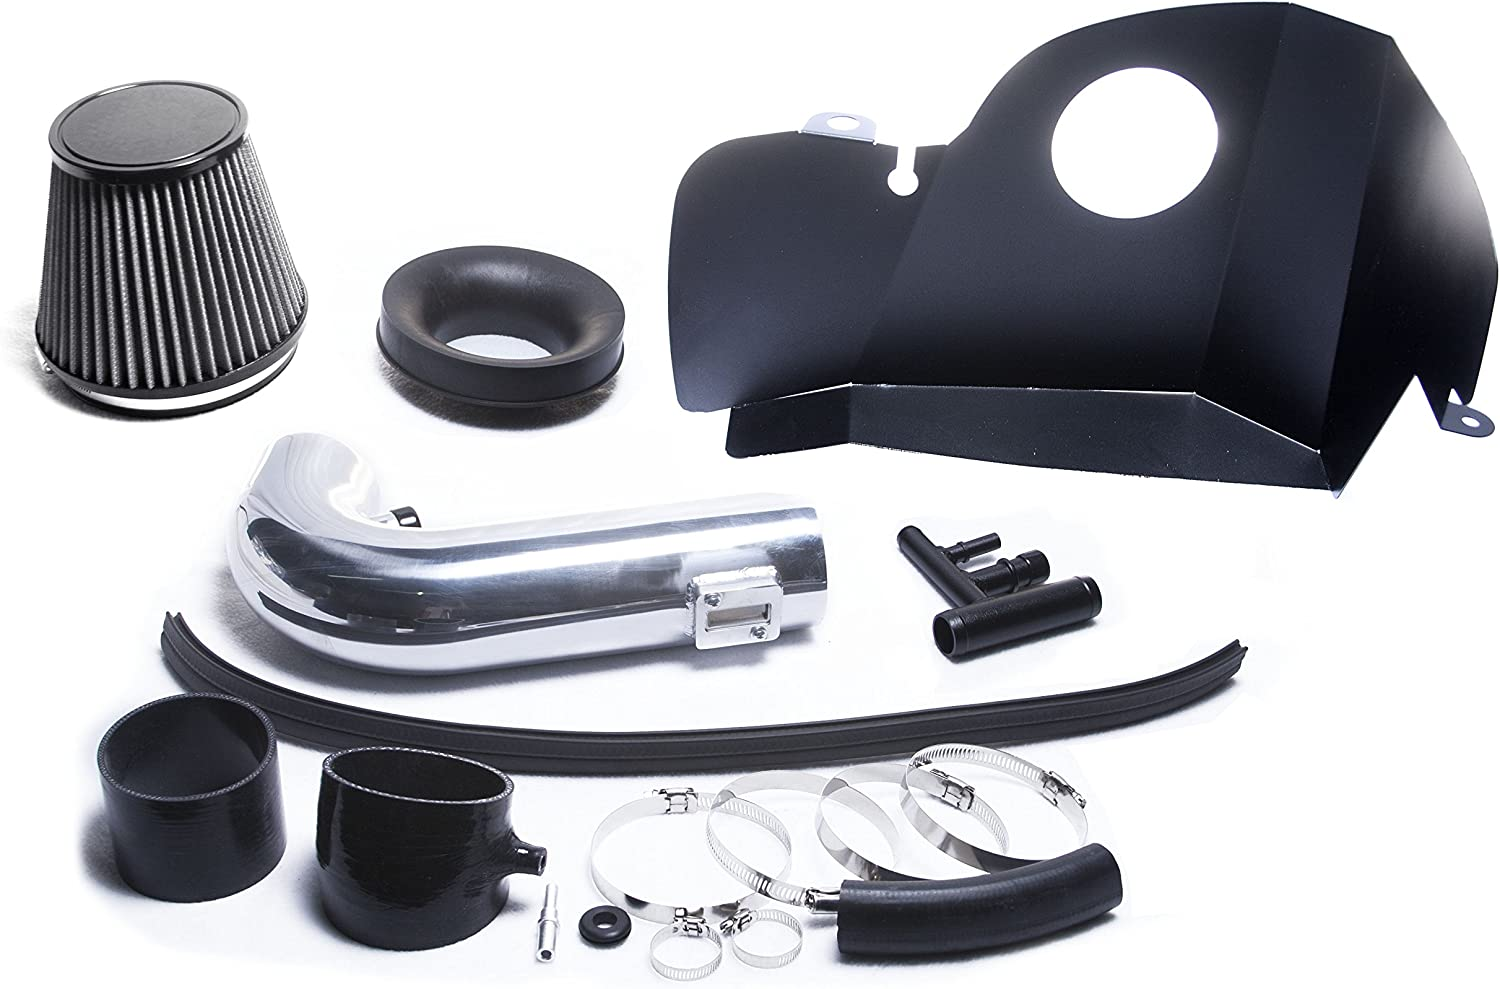 SILVER HEAT SHIELD COLD AIR INTAKE KIT SYSTEM FIT 2015 2016 2017 FORD MUSTANG//MUSTANG GT 5.0L V8 ENGINE